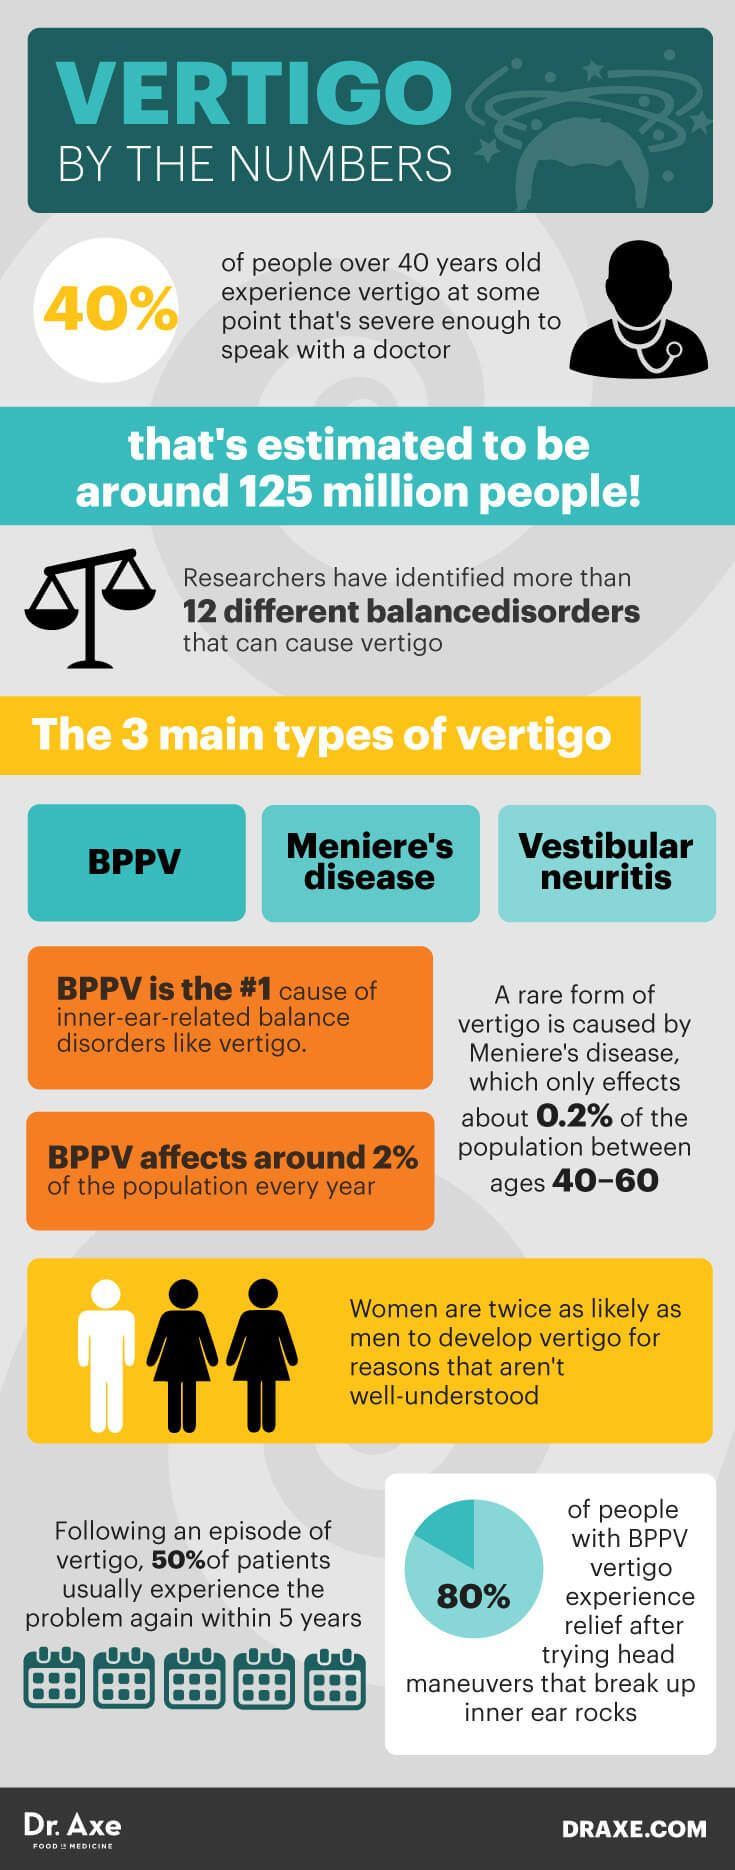 Vertigo by the numbers - Dr. Axe http://www.draxe.com #health #holistic #natural